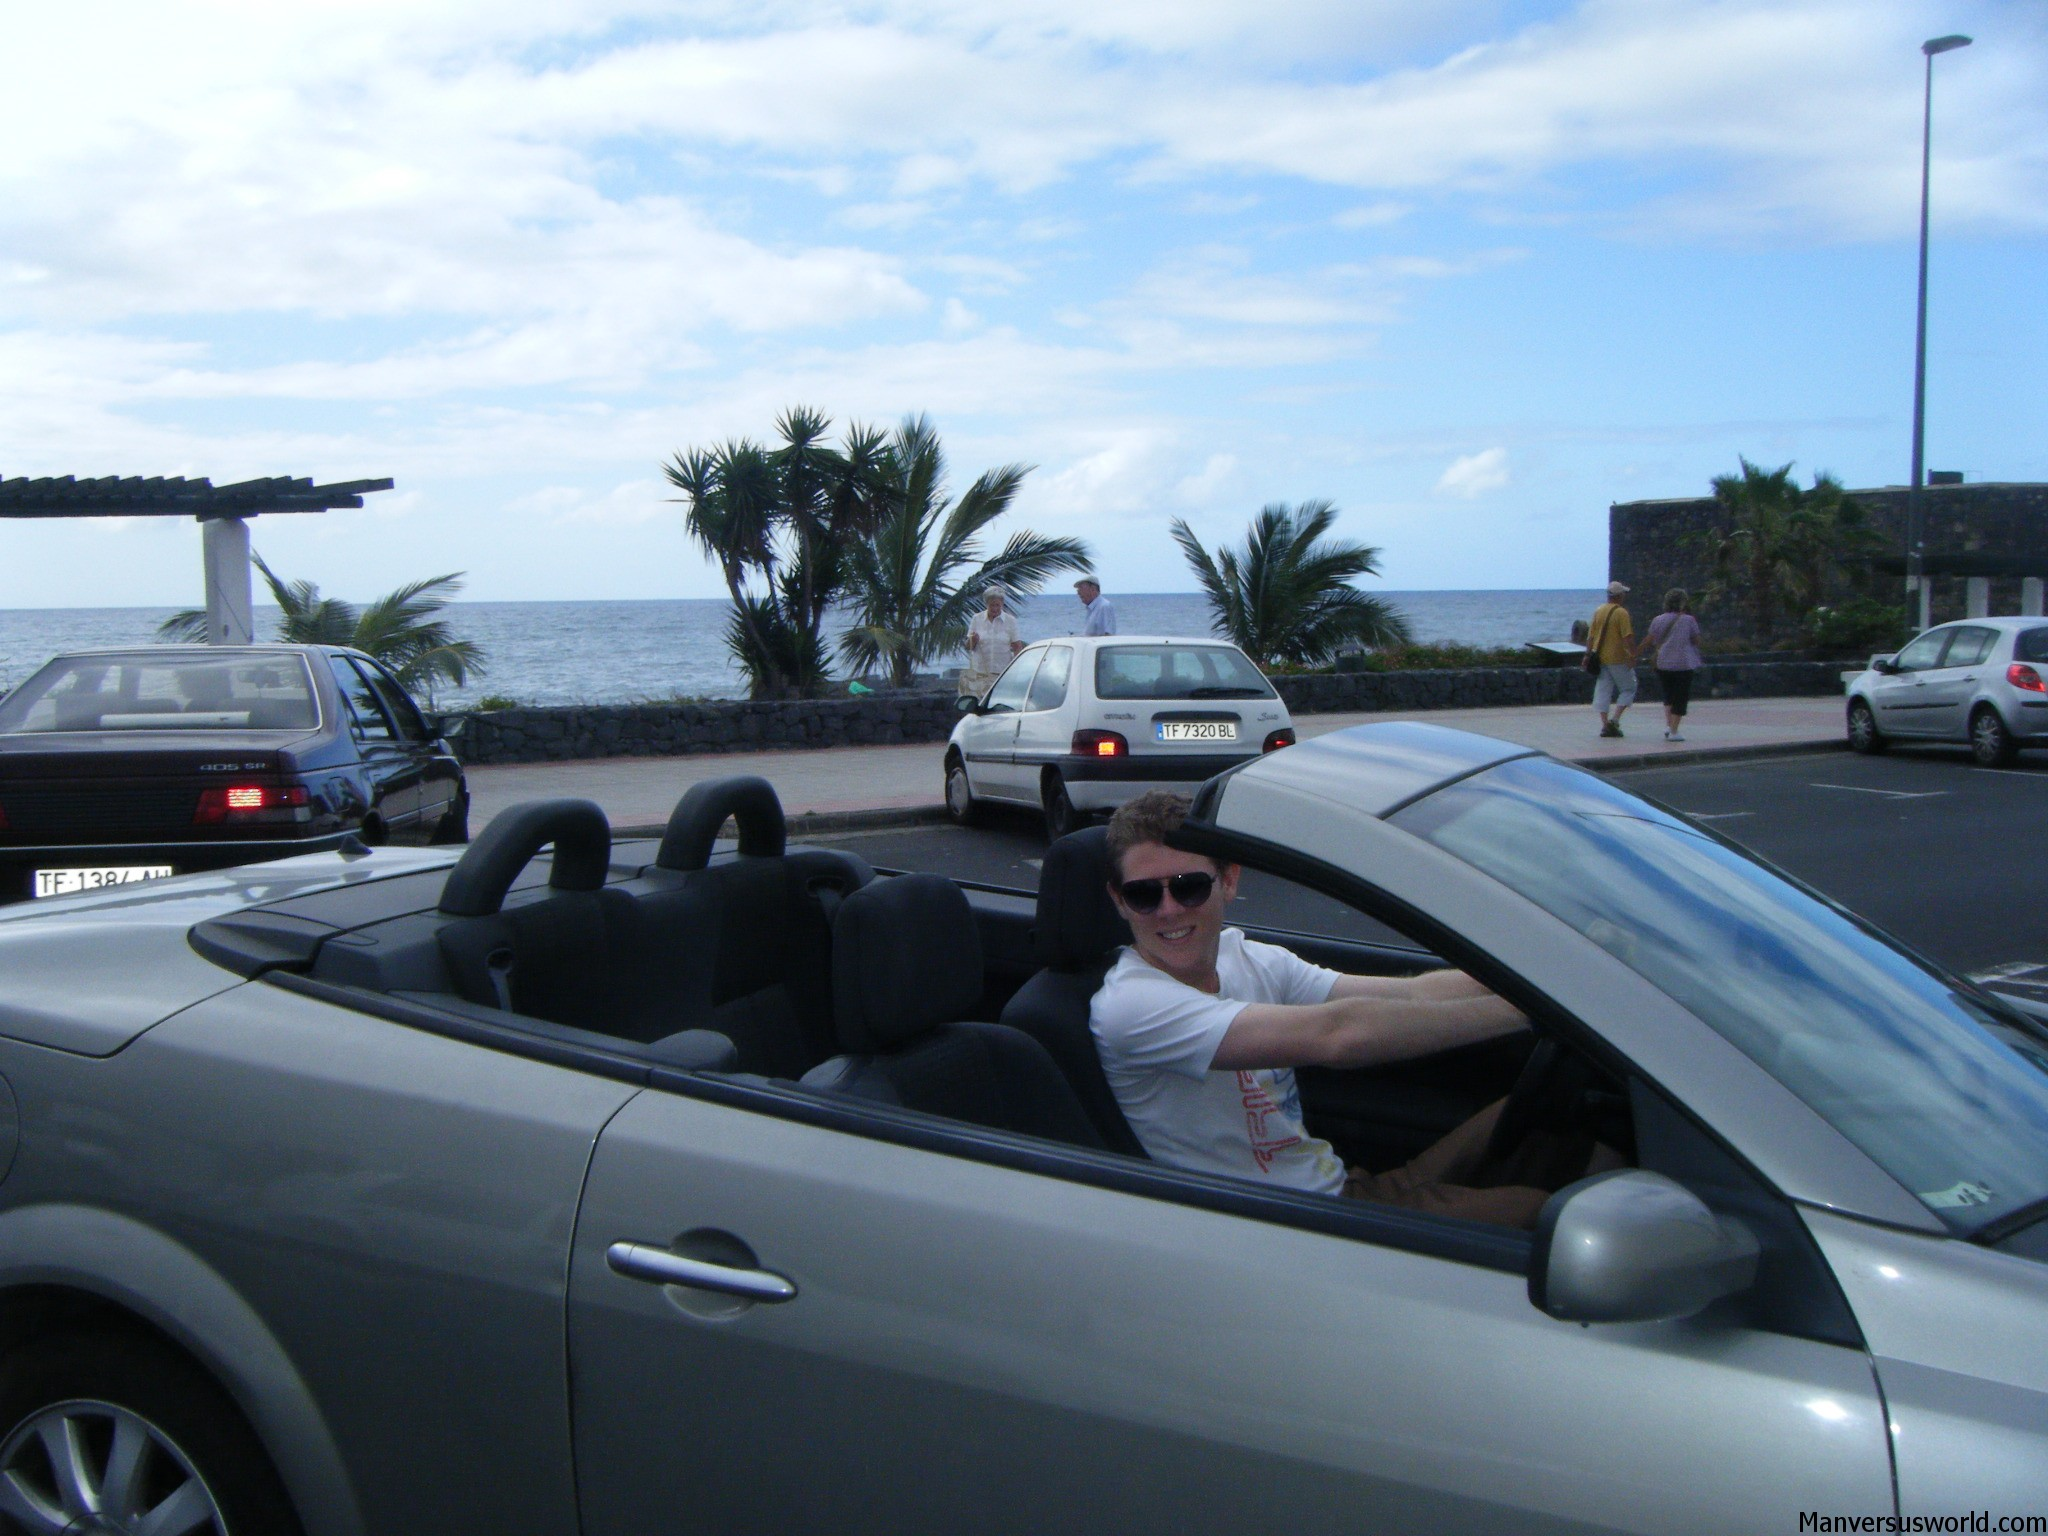 Me driving a conveertible in Tenerife.